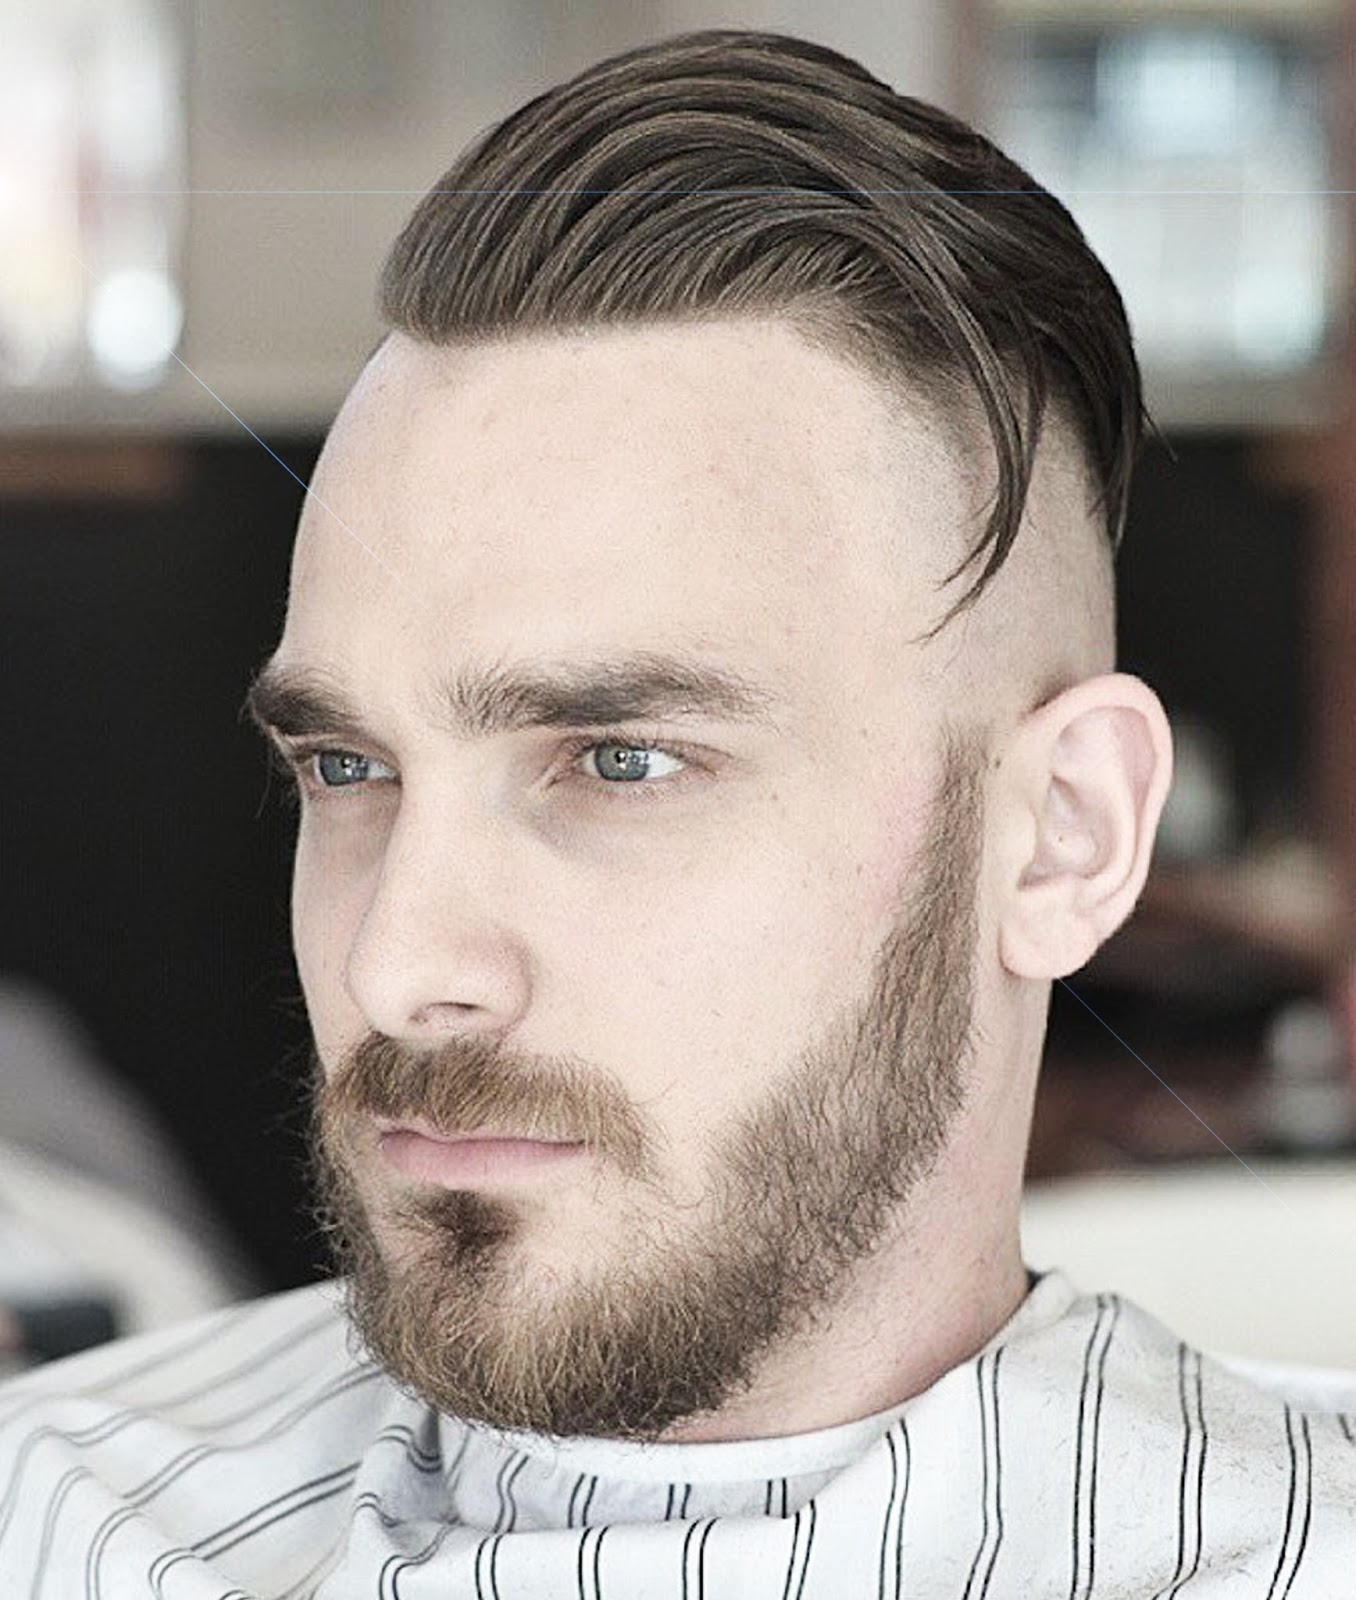 NEW 10 Hairstyles For Men 2016 Hairstyles Spot